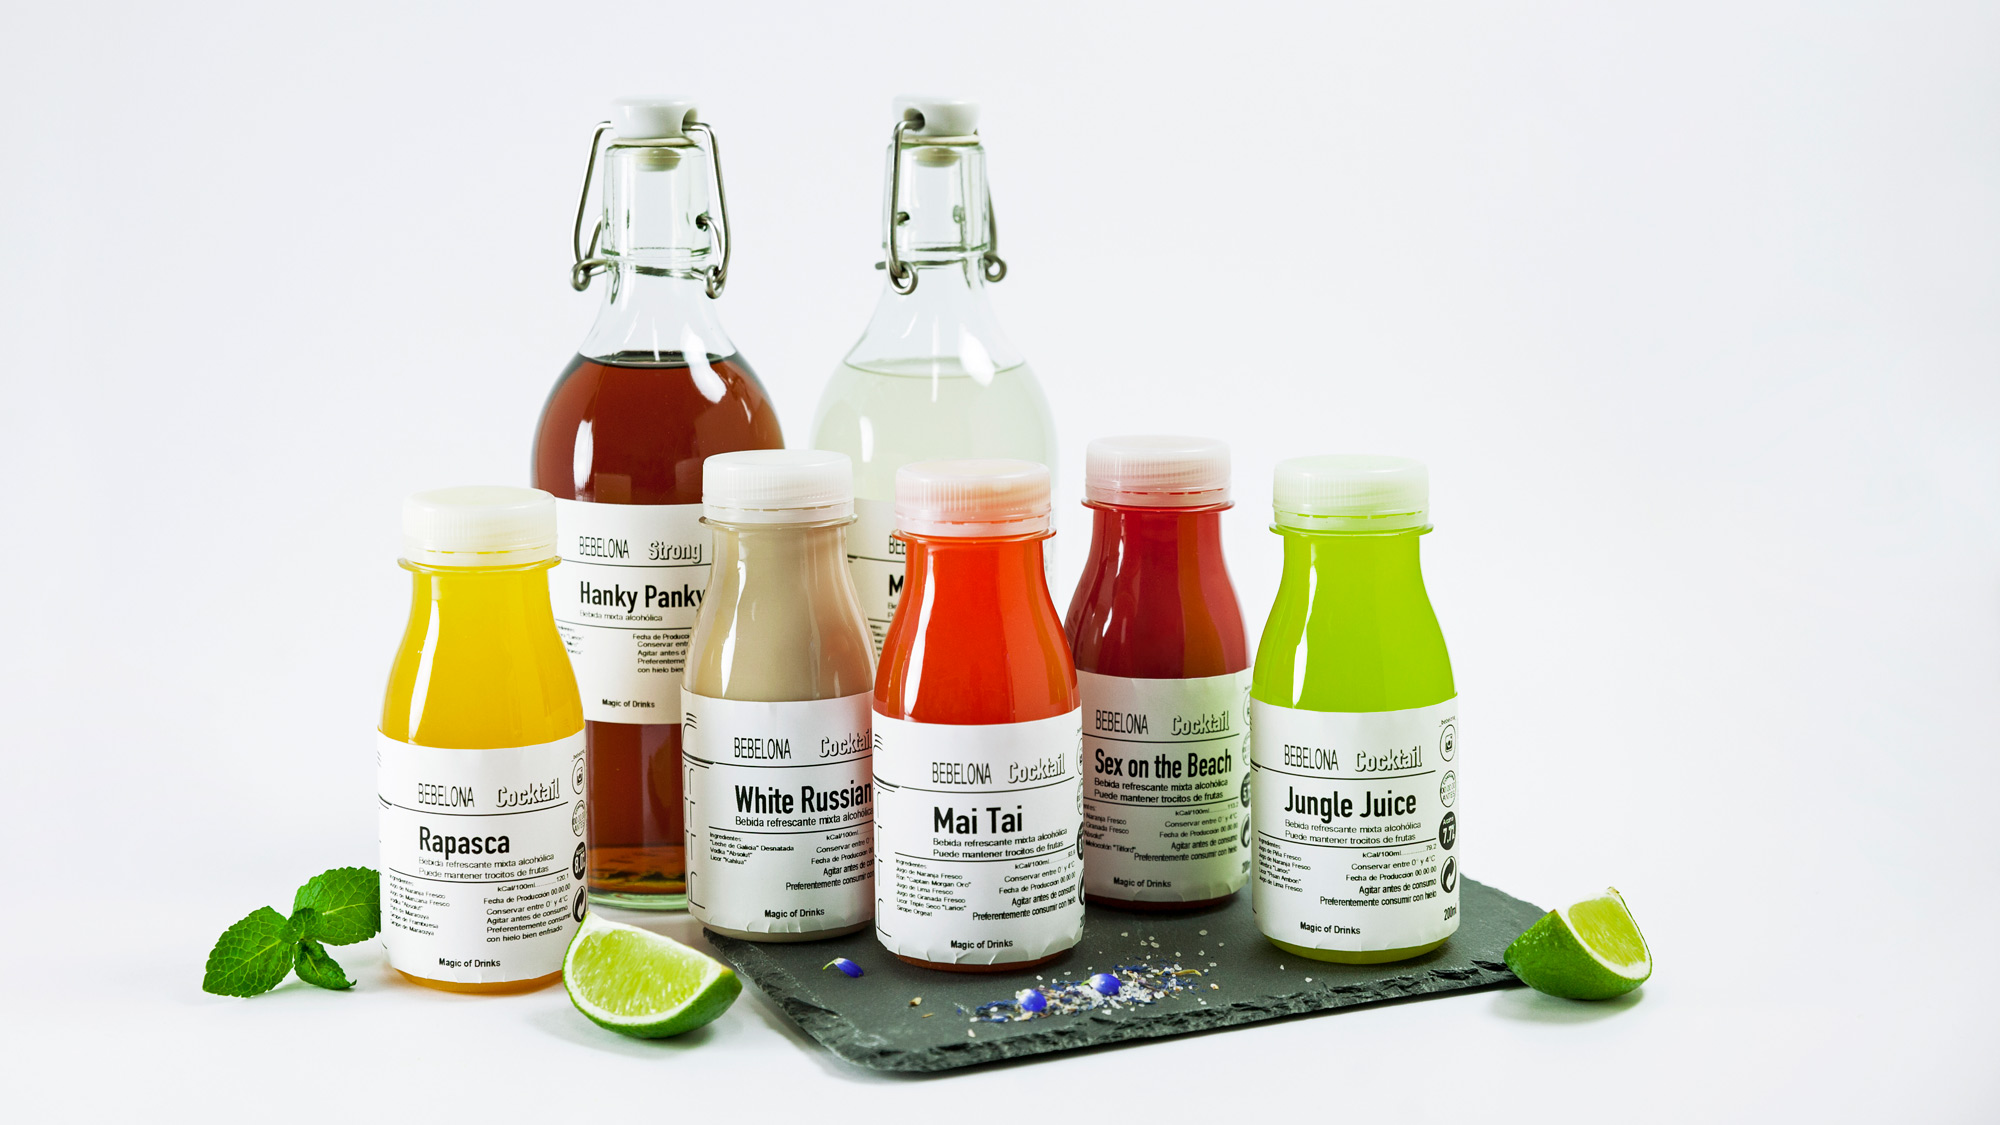 Fresh Mix - Enjoy a FRESH MADE cocktails from our and from popular recipes adapted by Bebelona. We use famous alcoholic beverages, syrups and purees mixed with COLD PRESSED juices